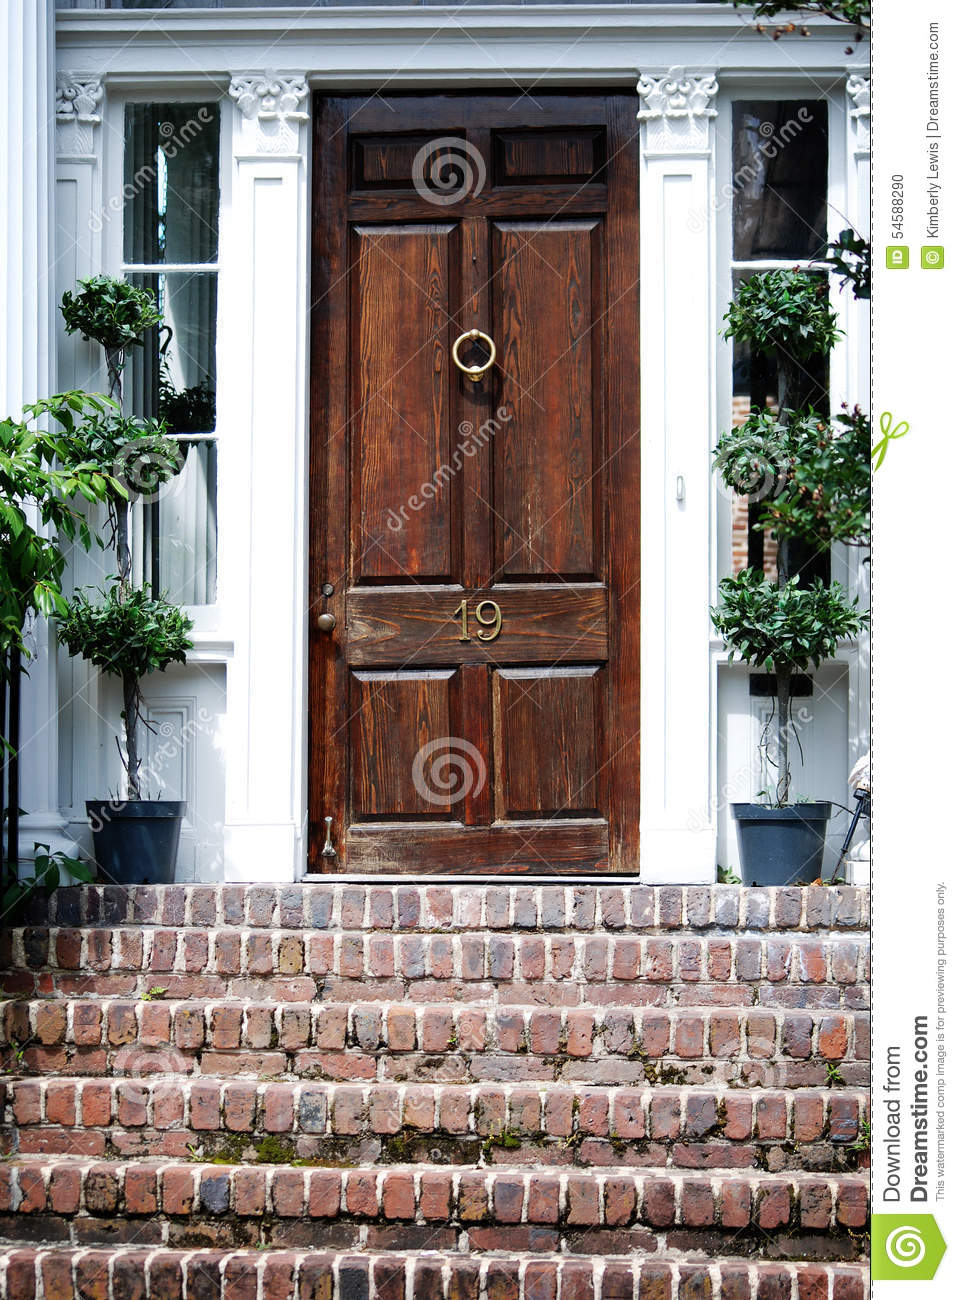 Stately wooden door with topiary on each side and brick stairs in Charleston, South Carolina.